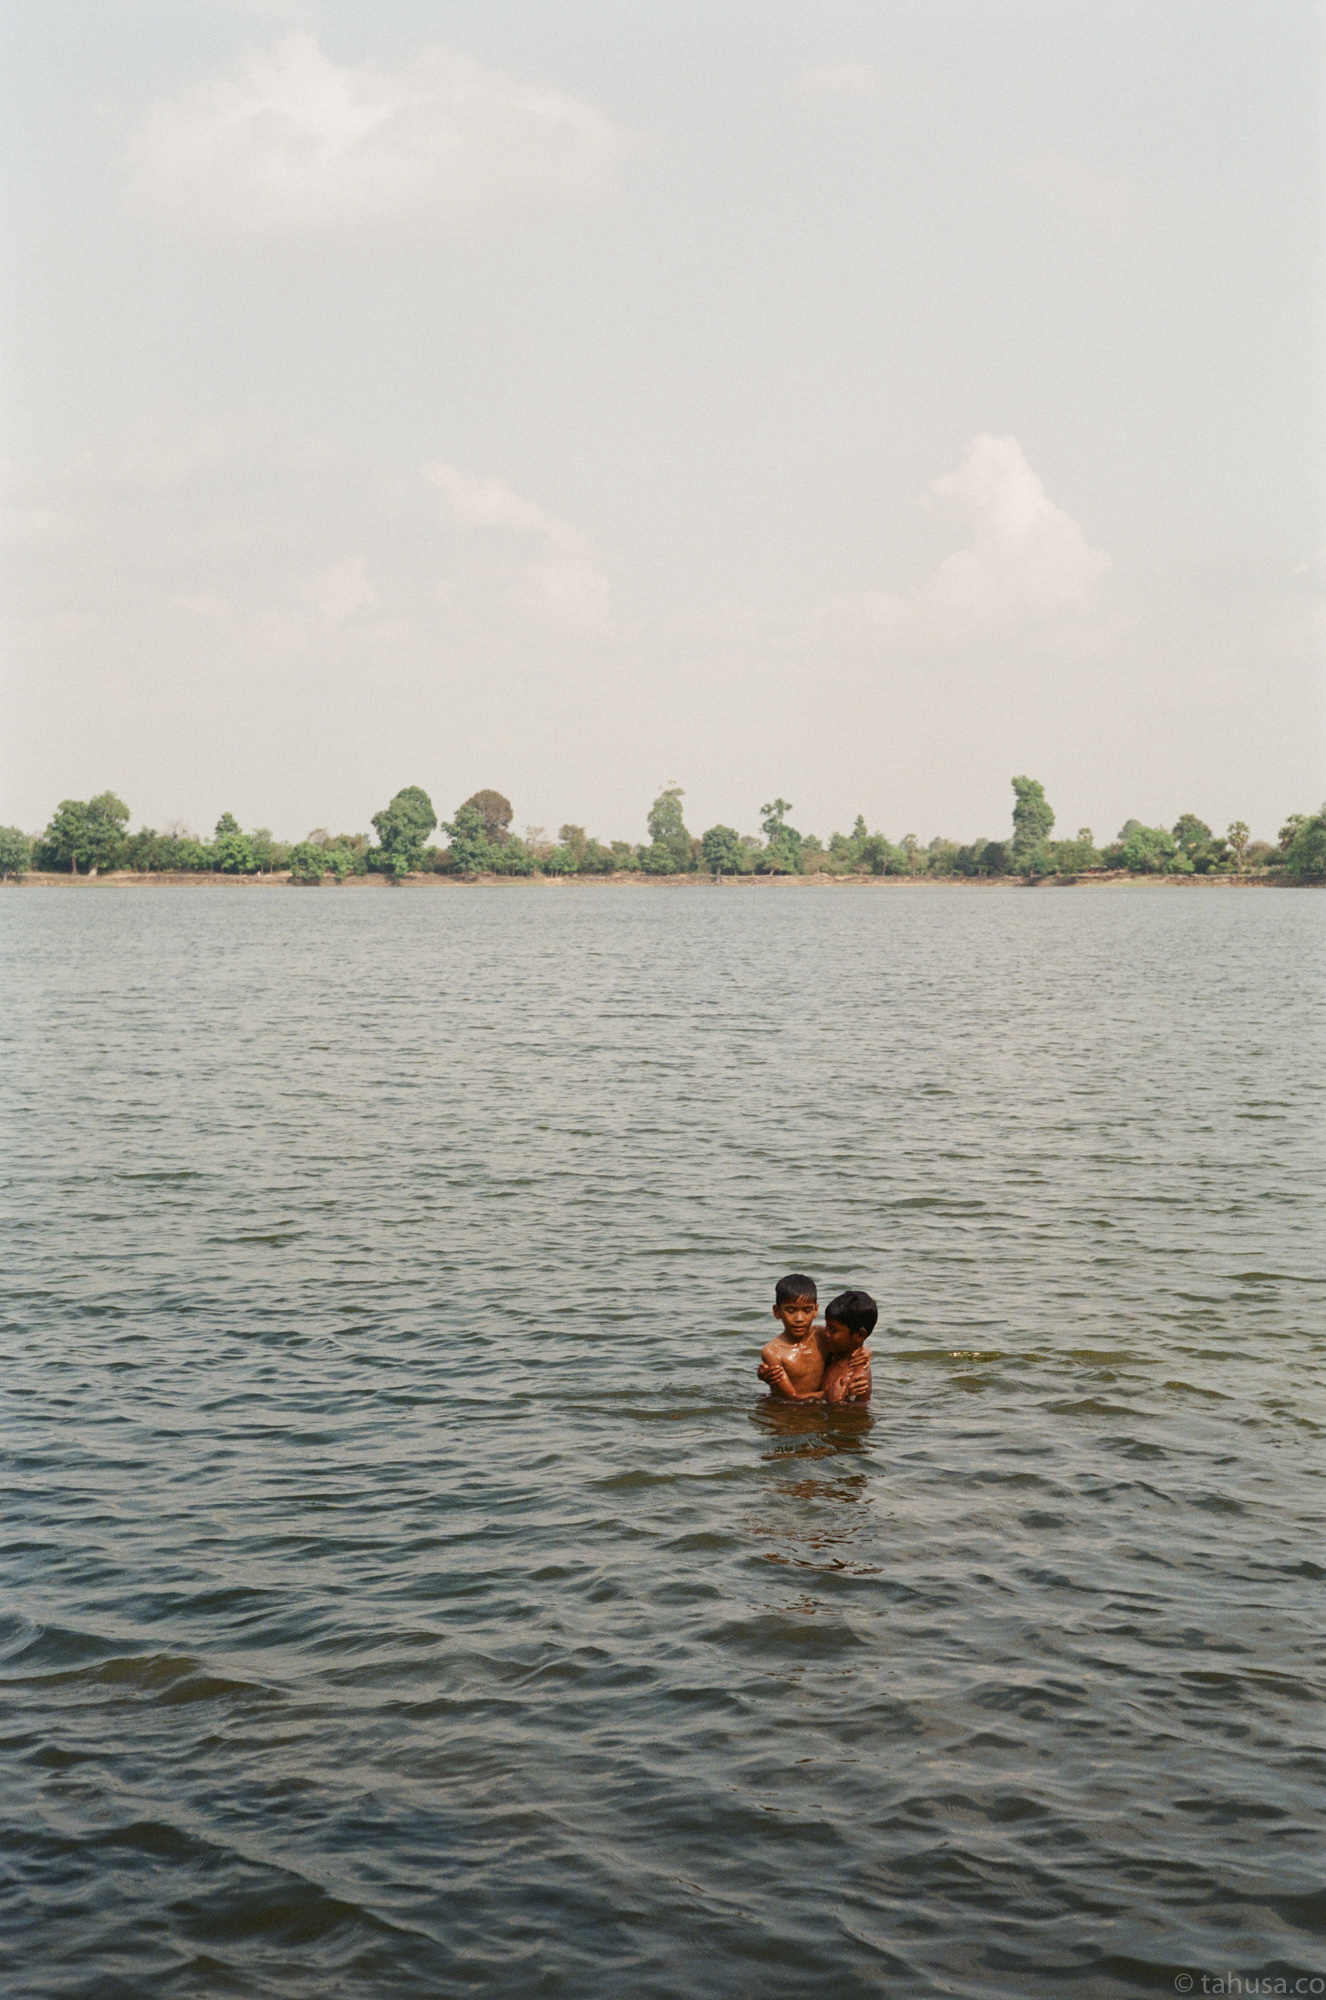 bromance-holding-each-other-in-water-lake-cambodia-angkor-siem-reap-south-east-asia-travel-travelling-street-snap-using-leica-m2-summilux-35mm-f1.4-infinity-lock-pre-asph-analog-film-is-fuji-fujifilm-superia-premium-400-iso400